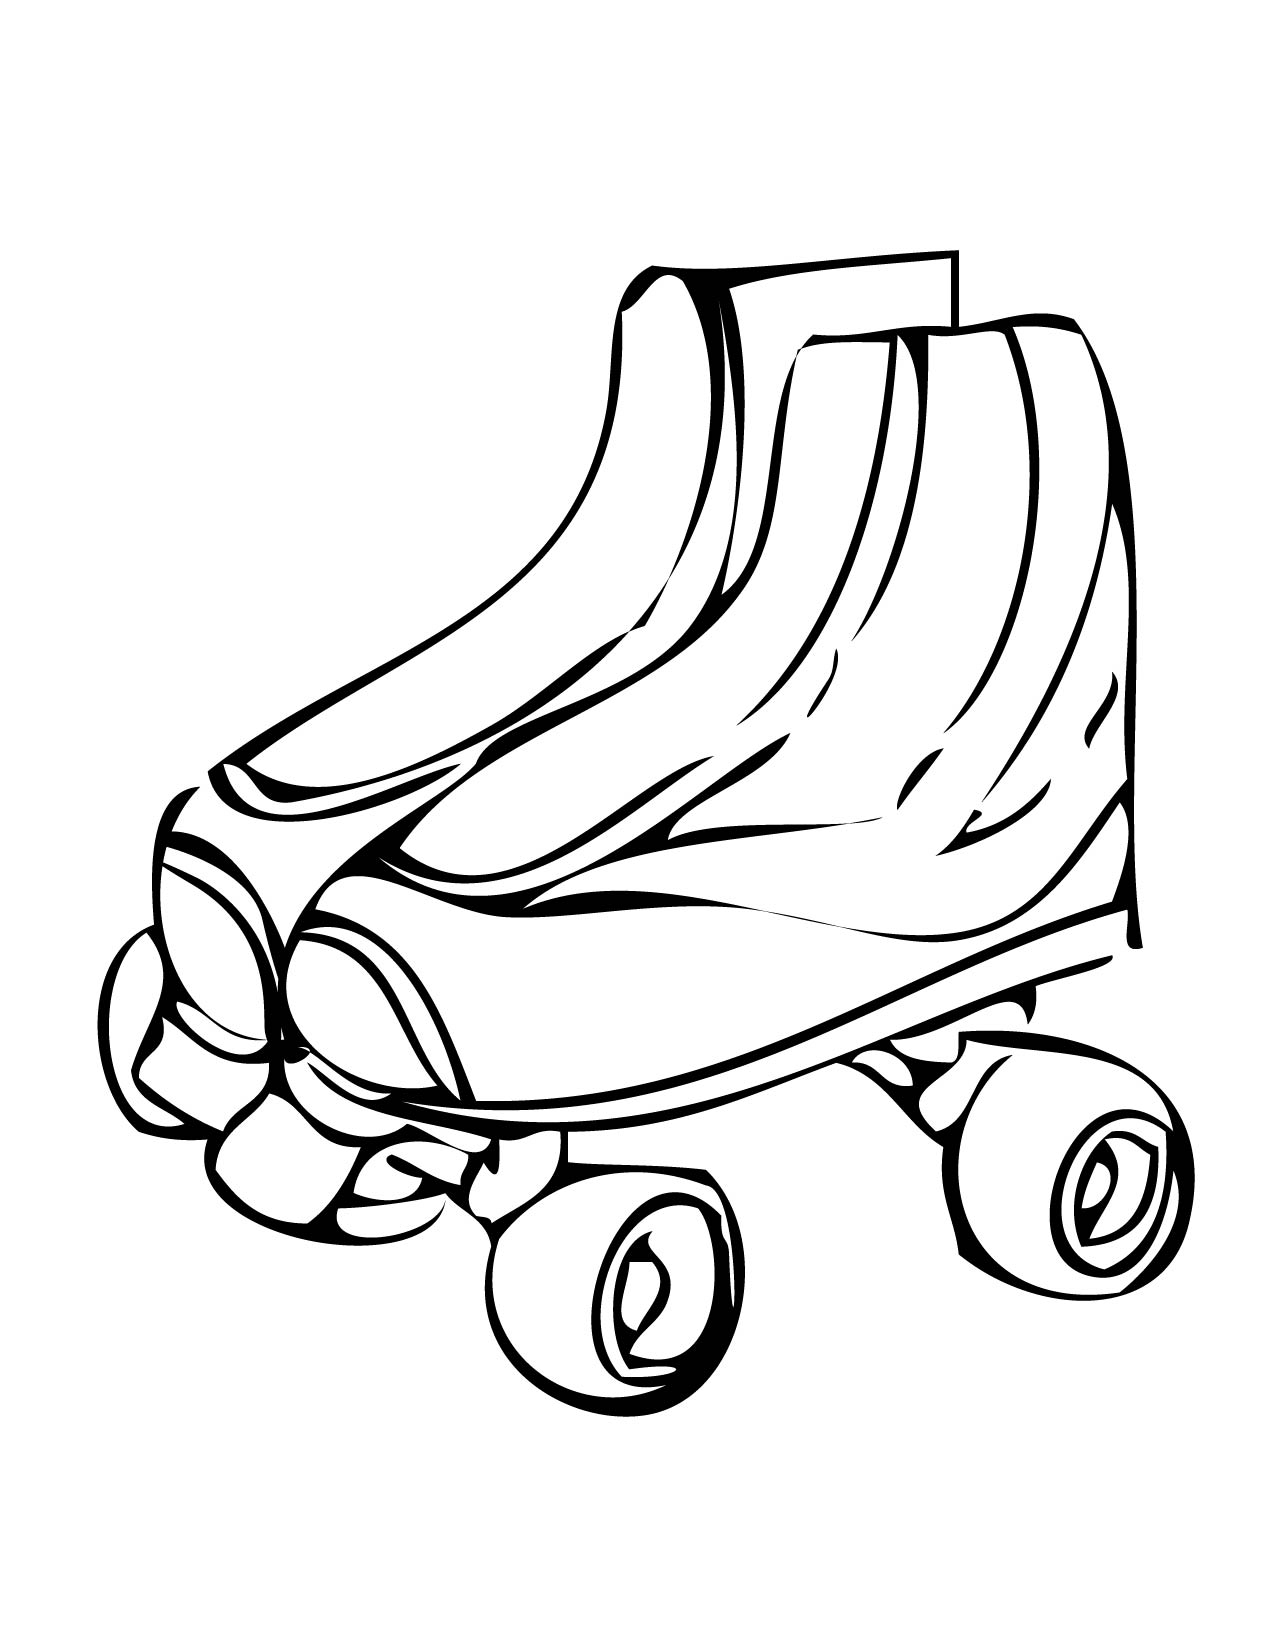 Free Rollerskate Cliparts, Download Free Clip Art, Free Clip.